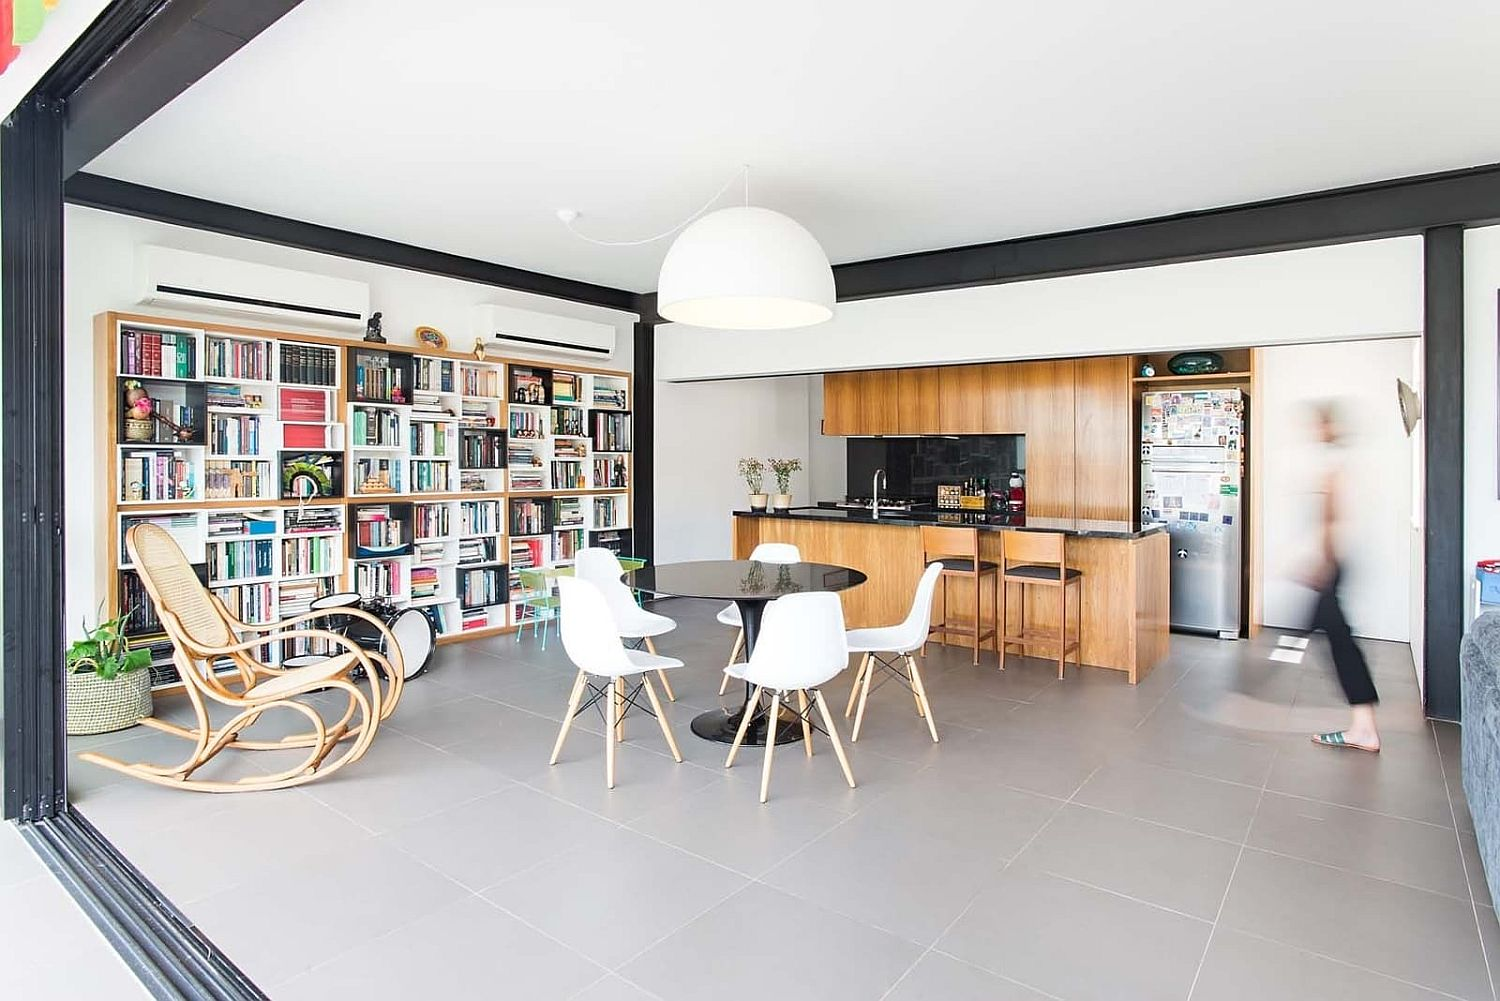 It-is-the-dining-area-that-sits-at-the-heart-of-this-open-plan-living